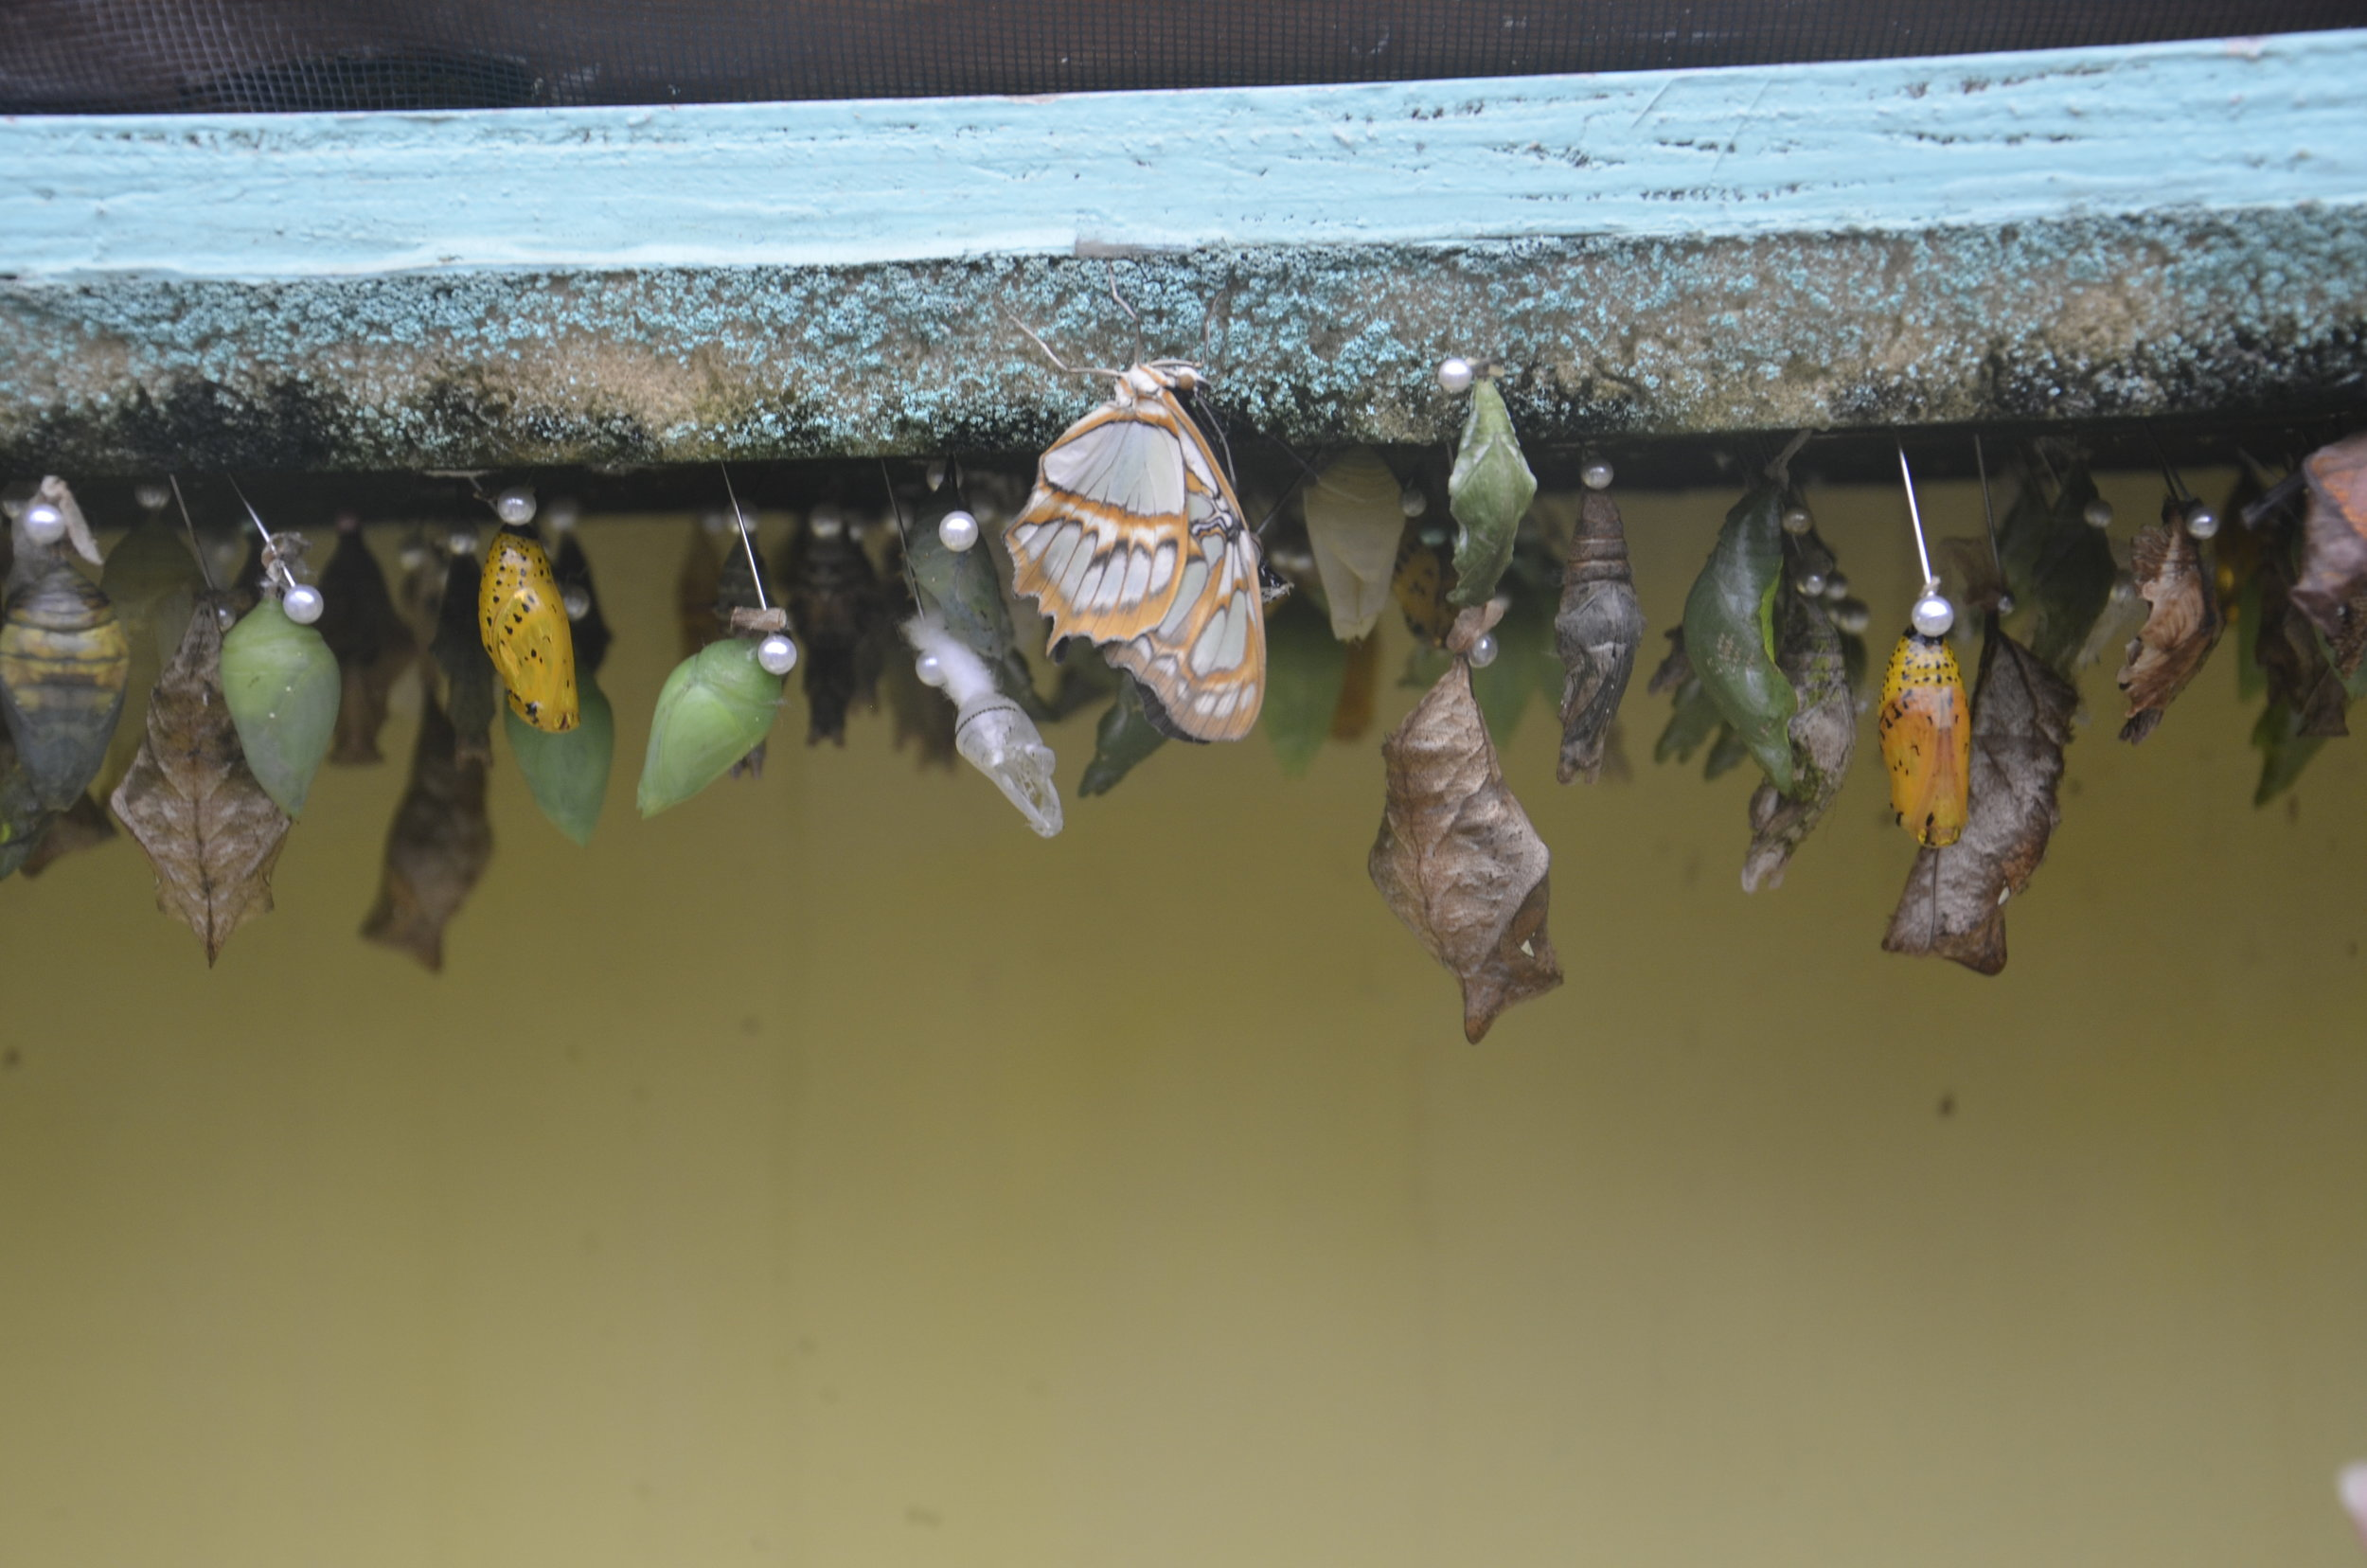 Various chrysalises (?chrysili?)